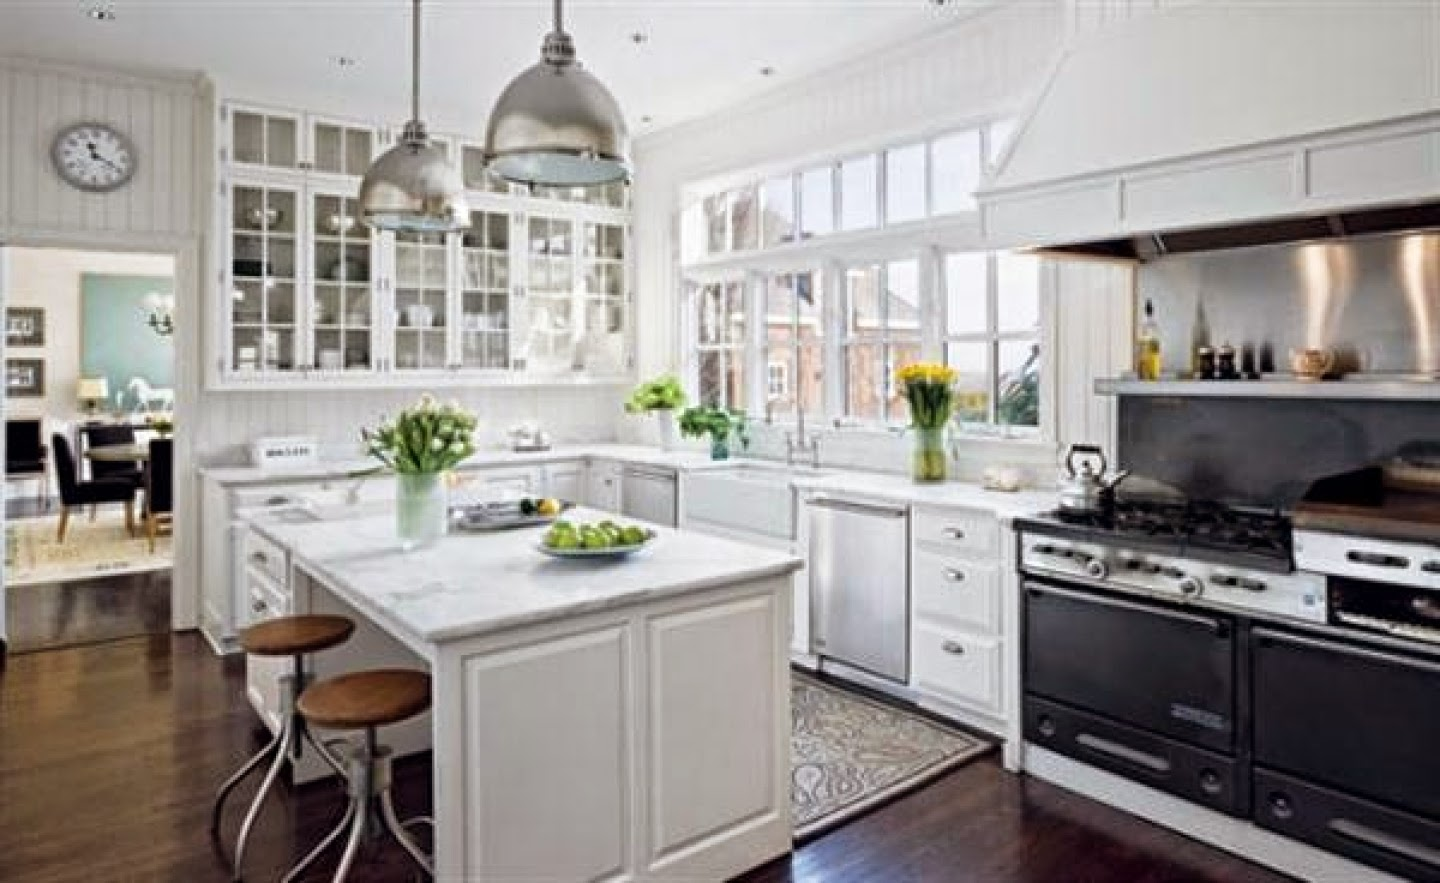 Beauftiful White Kitchens: Always in Style – South Shore Decorating Blog